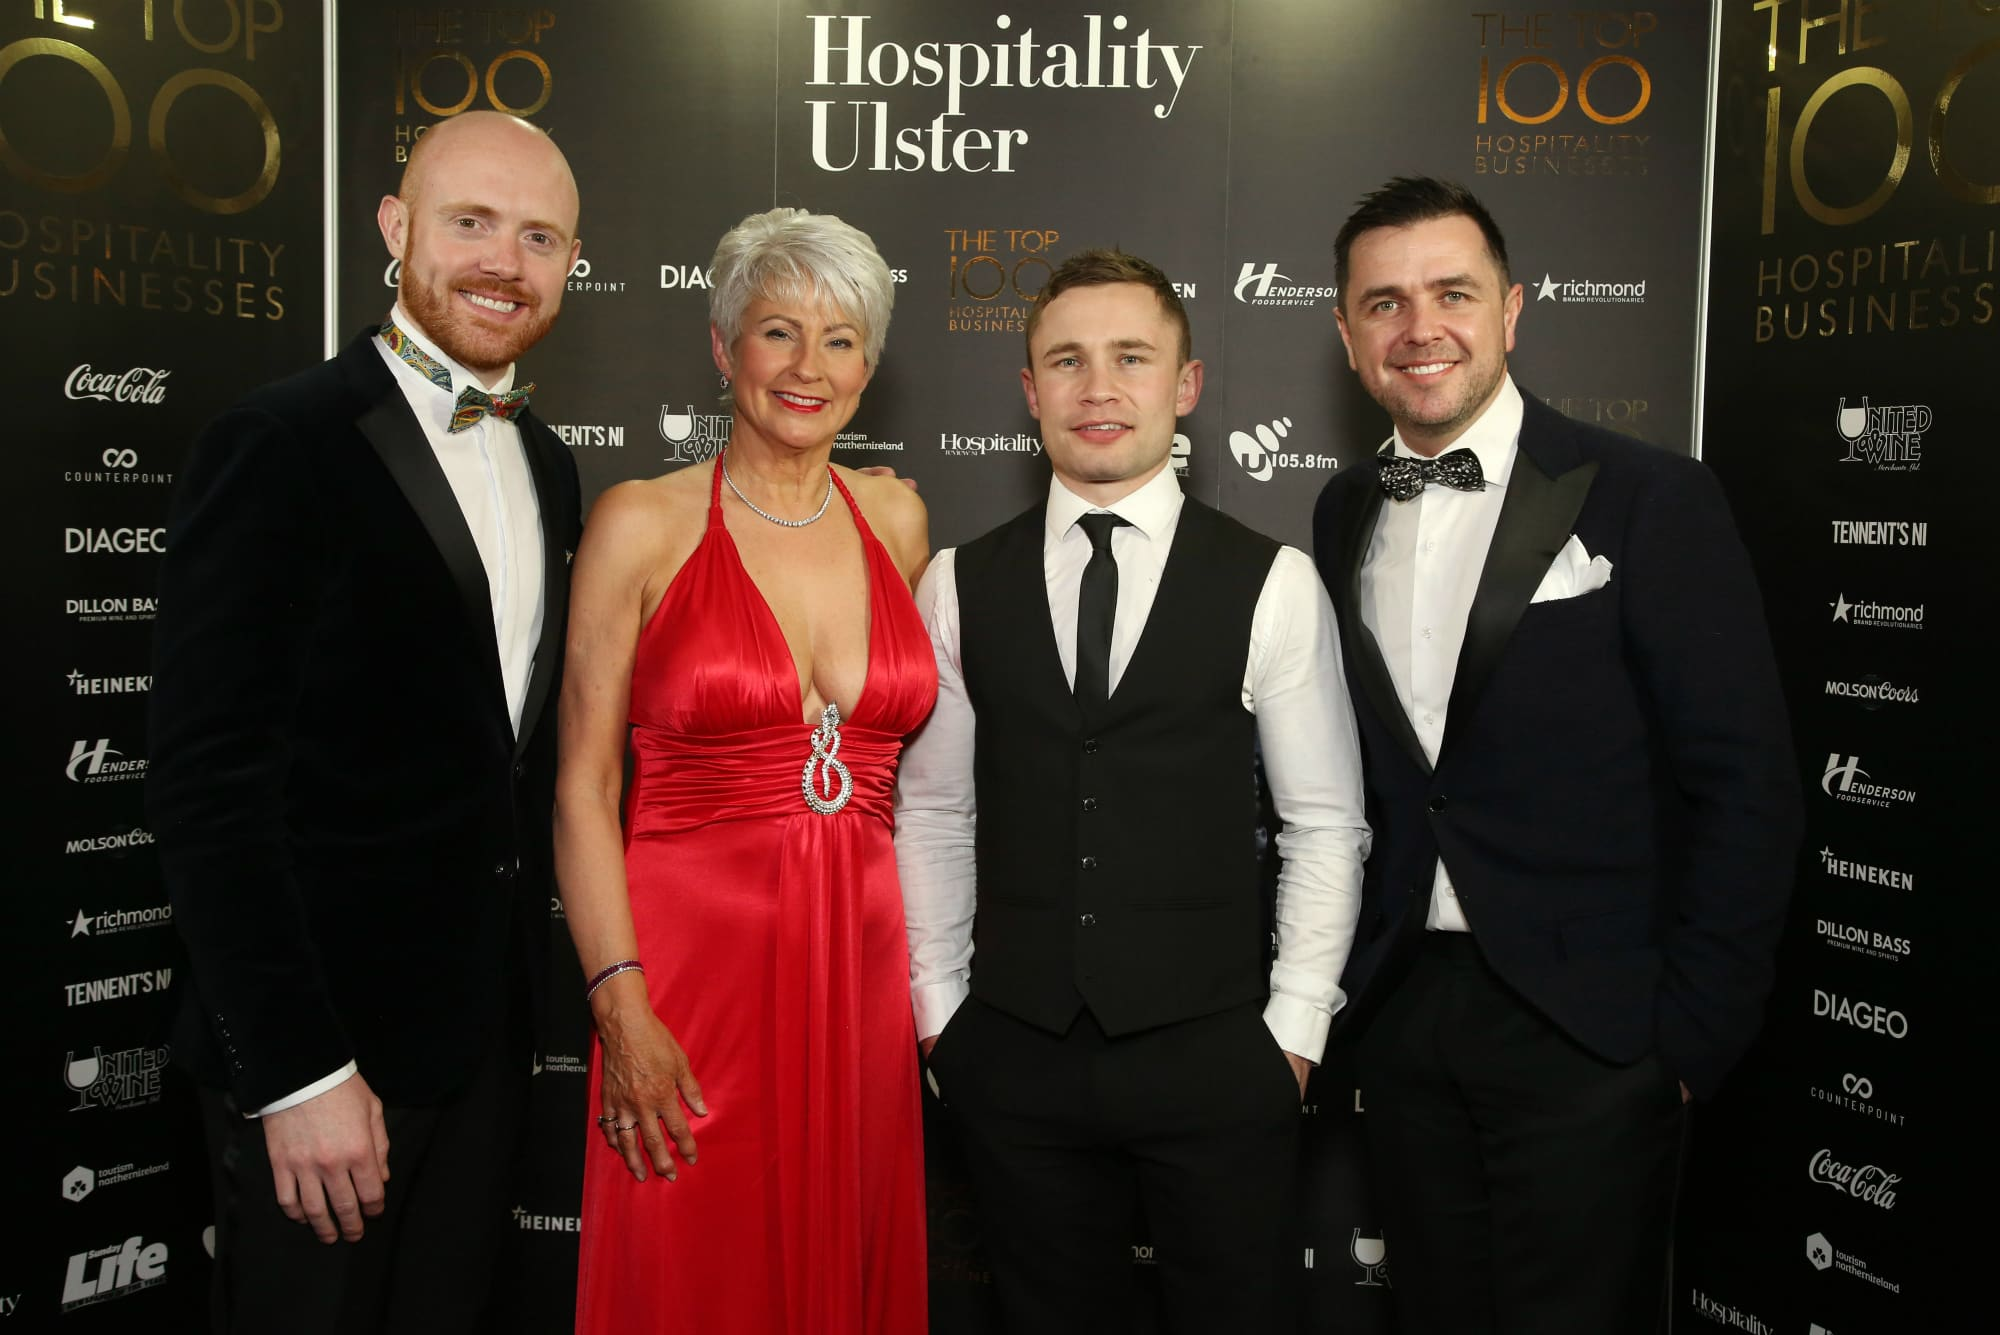 NI TOP 100 HOSPITALITY HOTSPOTS REVEALED